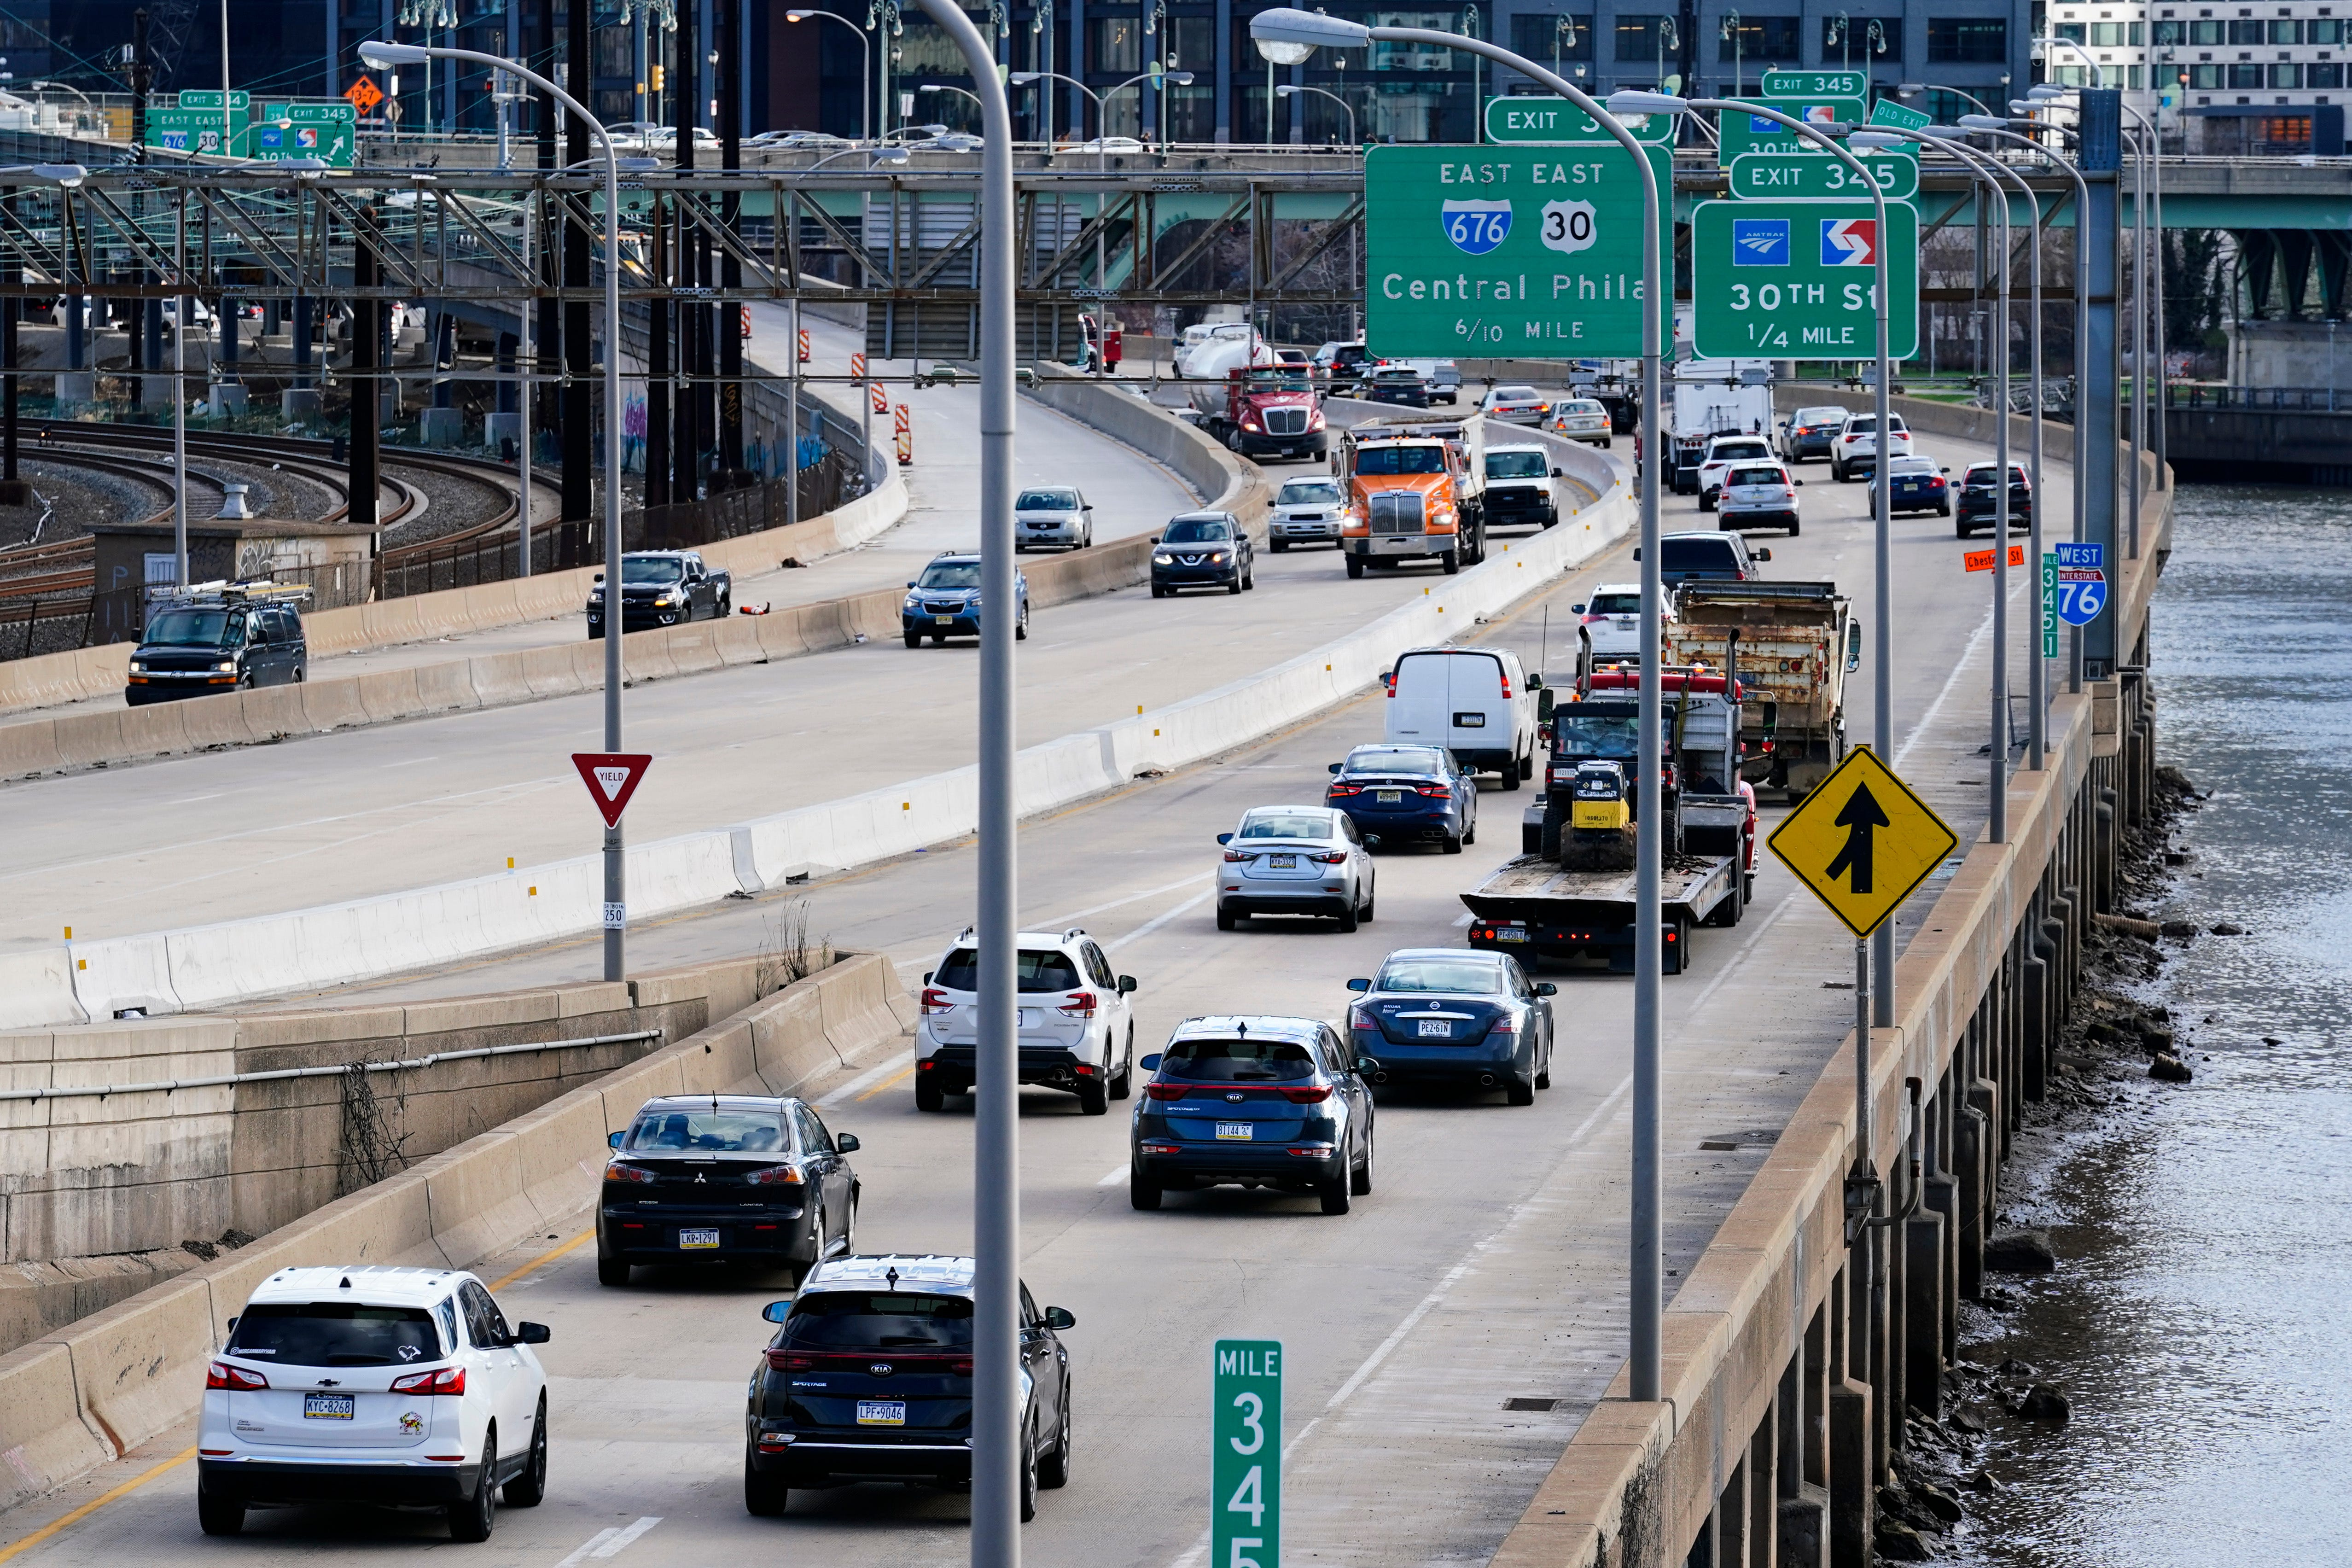 Morning traffic moves along Interstate 76 in Philadelphia on March 29, 2021.